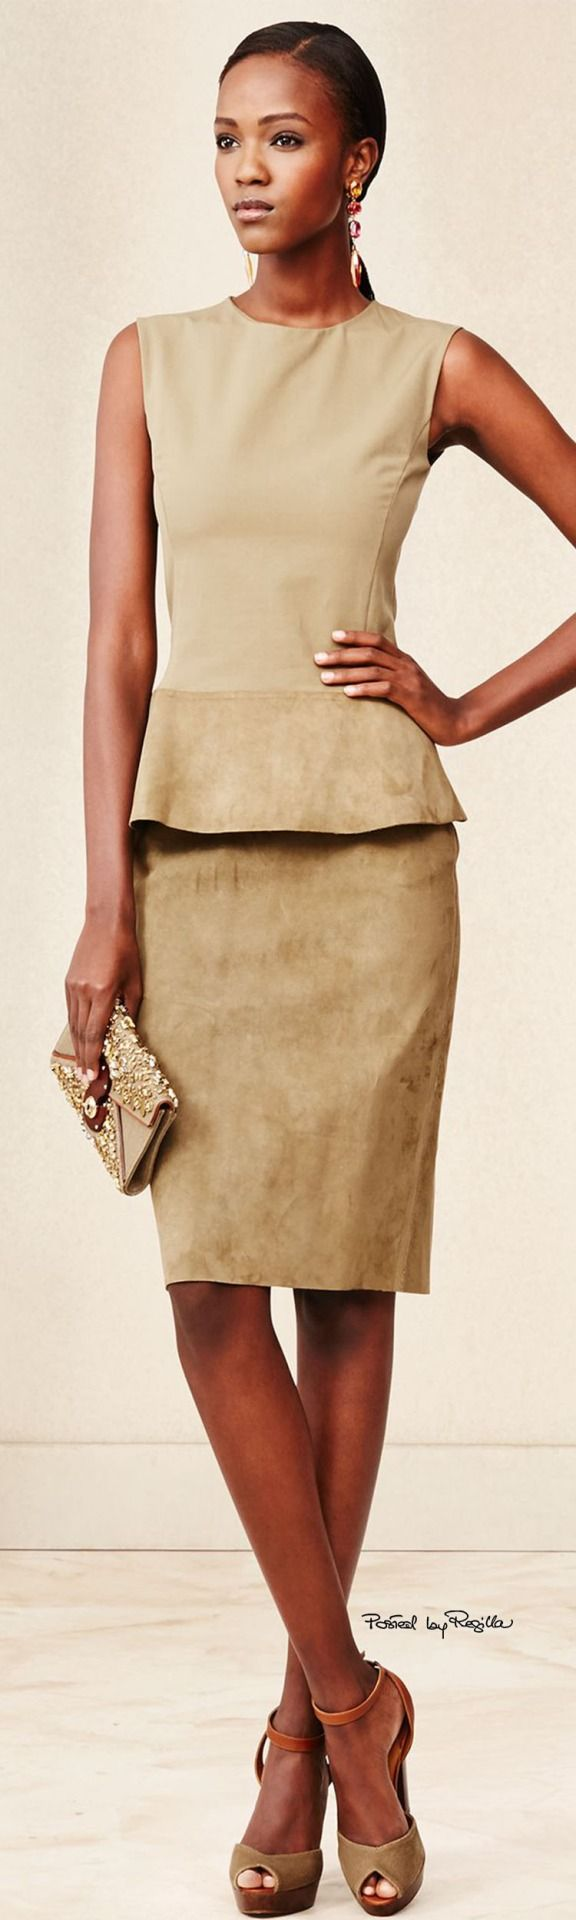 Toasted Almond skirt and top...